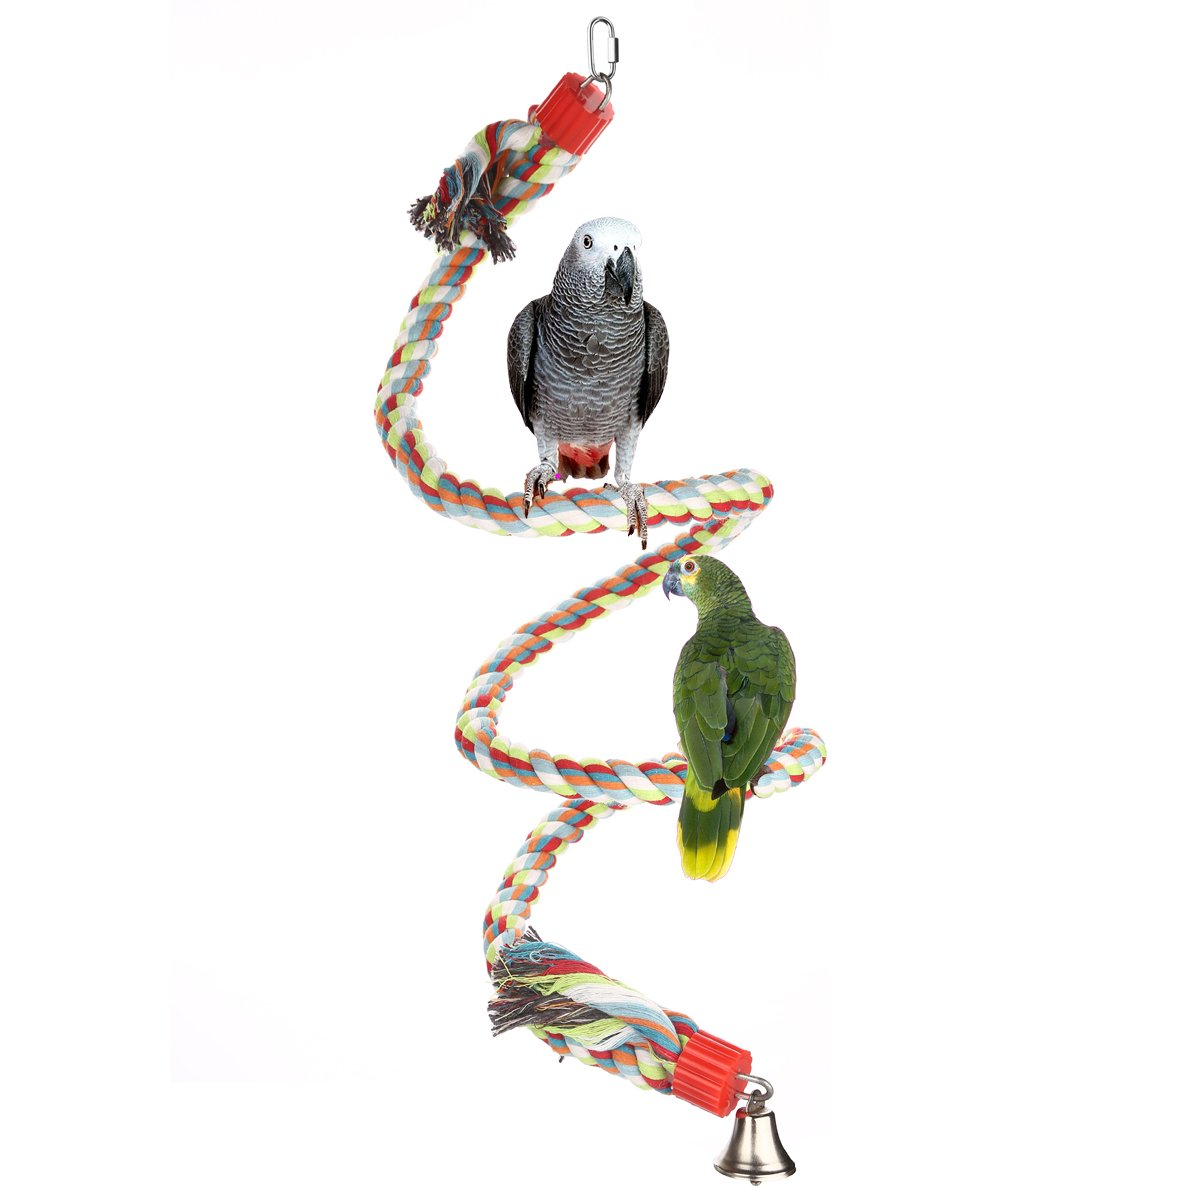 Jusney The Large Parrot Cage Toys 63 Inch Rope Bungee Climbing Ropes,Swing Toys,Spiral Standing Toys About 160 Centimeter Long